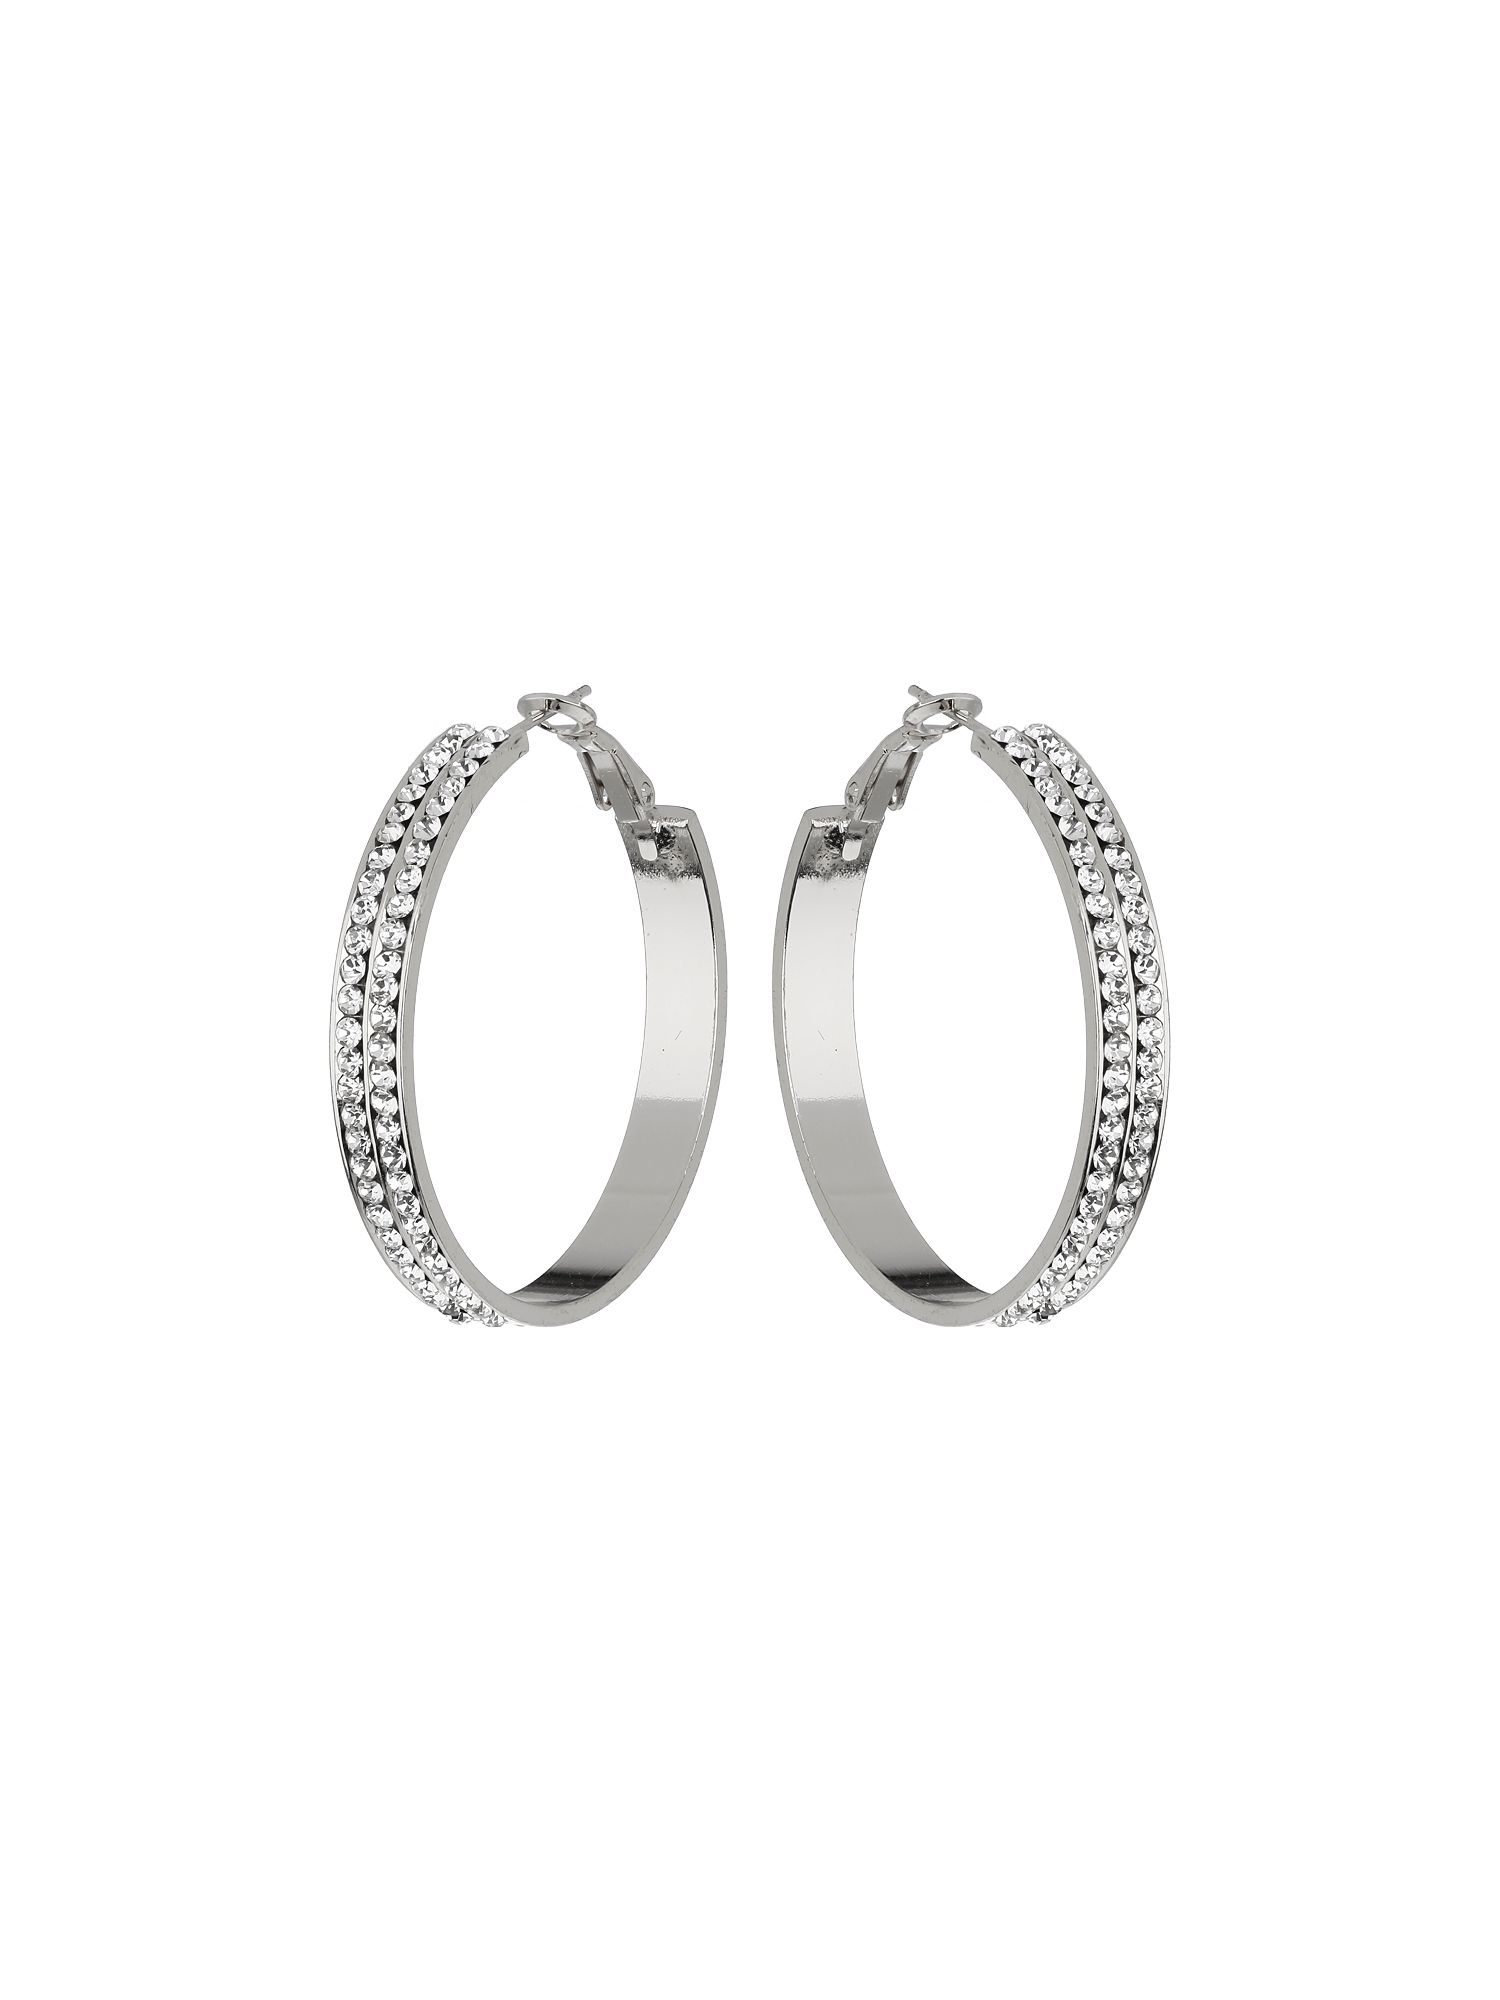 2 line hoop earrings